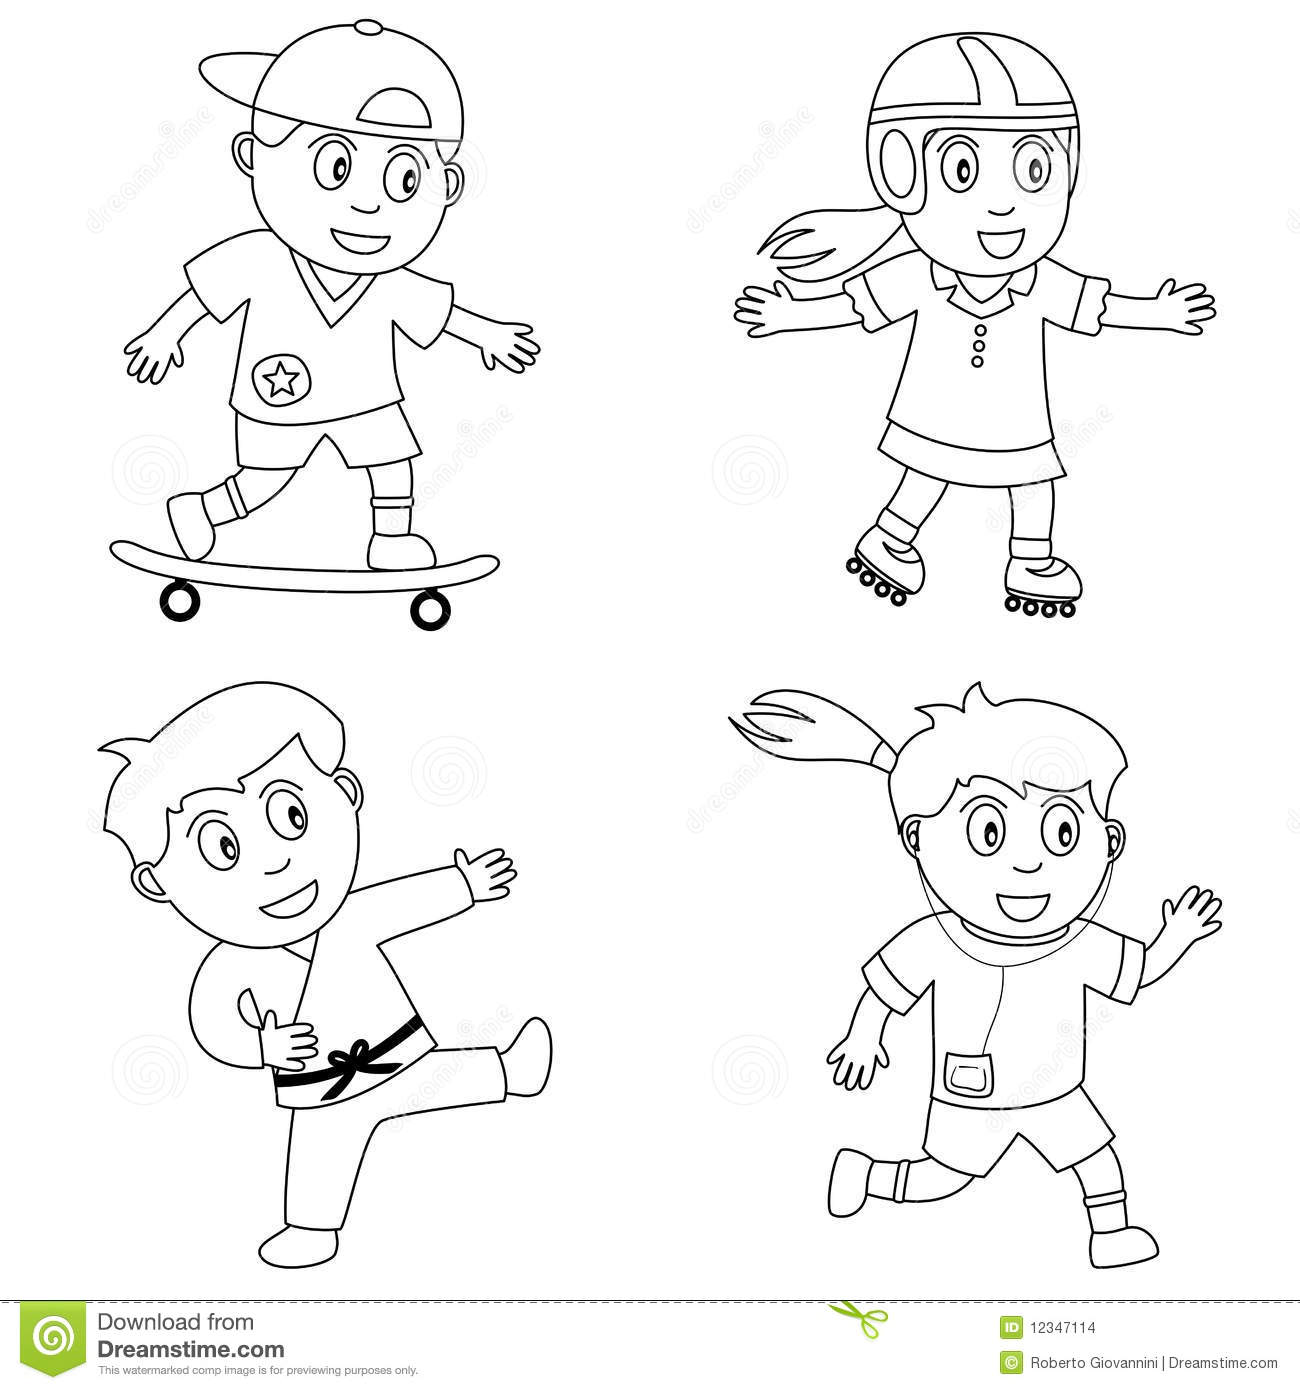 coloring clipart of kids firefighter coloring pages to download and print for free of kids coloring clipart